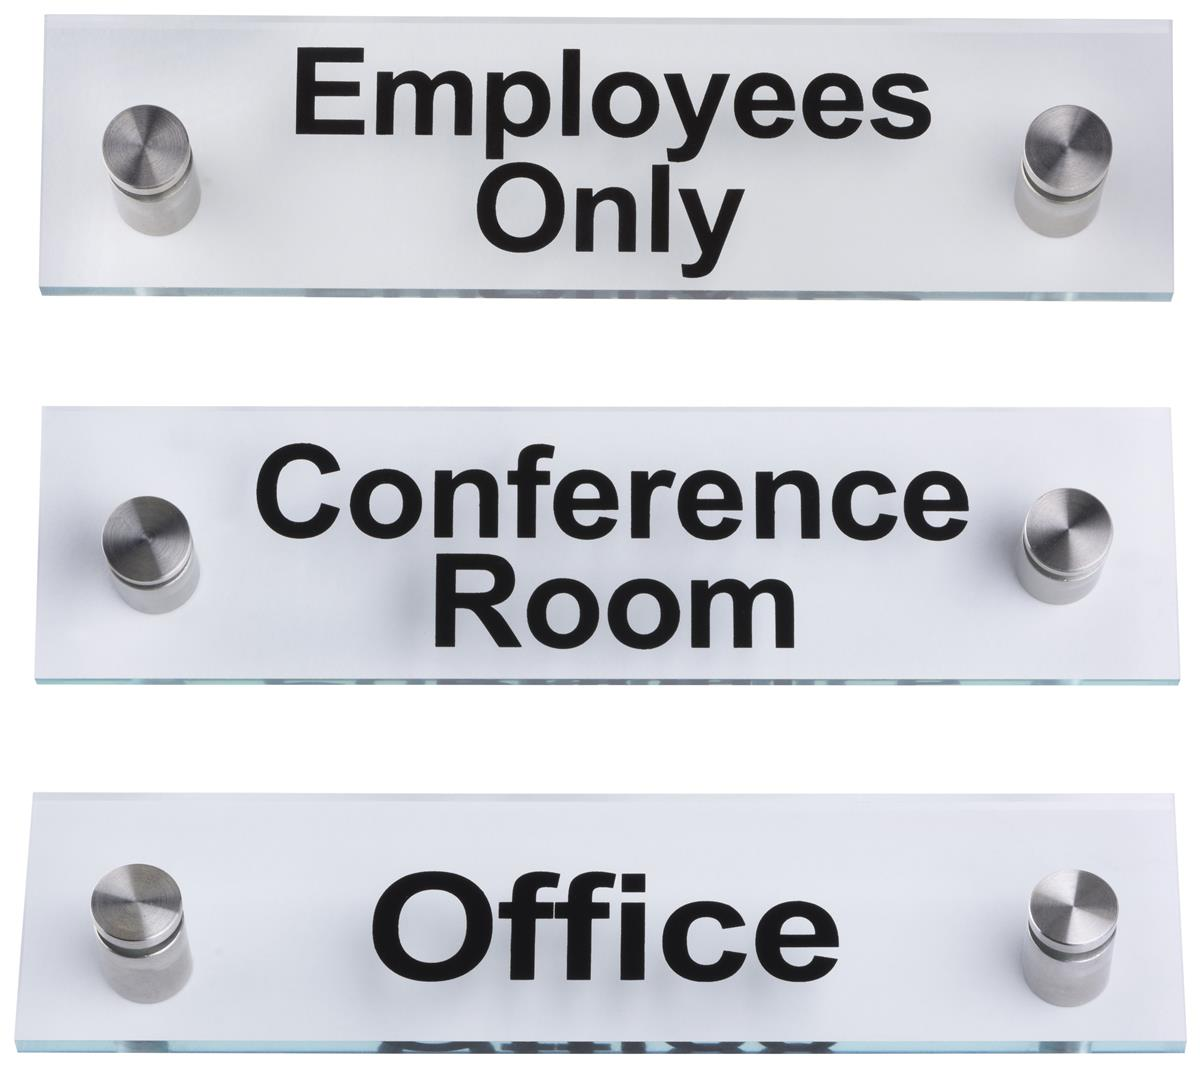 Pre Printed Acrylic Signs For Office Signage Amp Wall Hardware